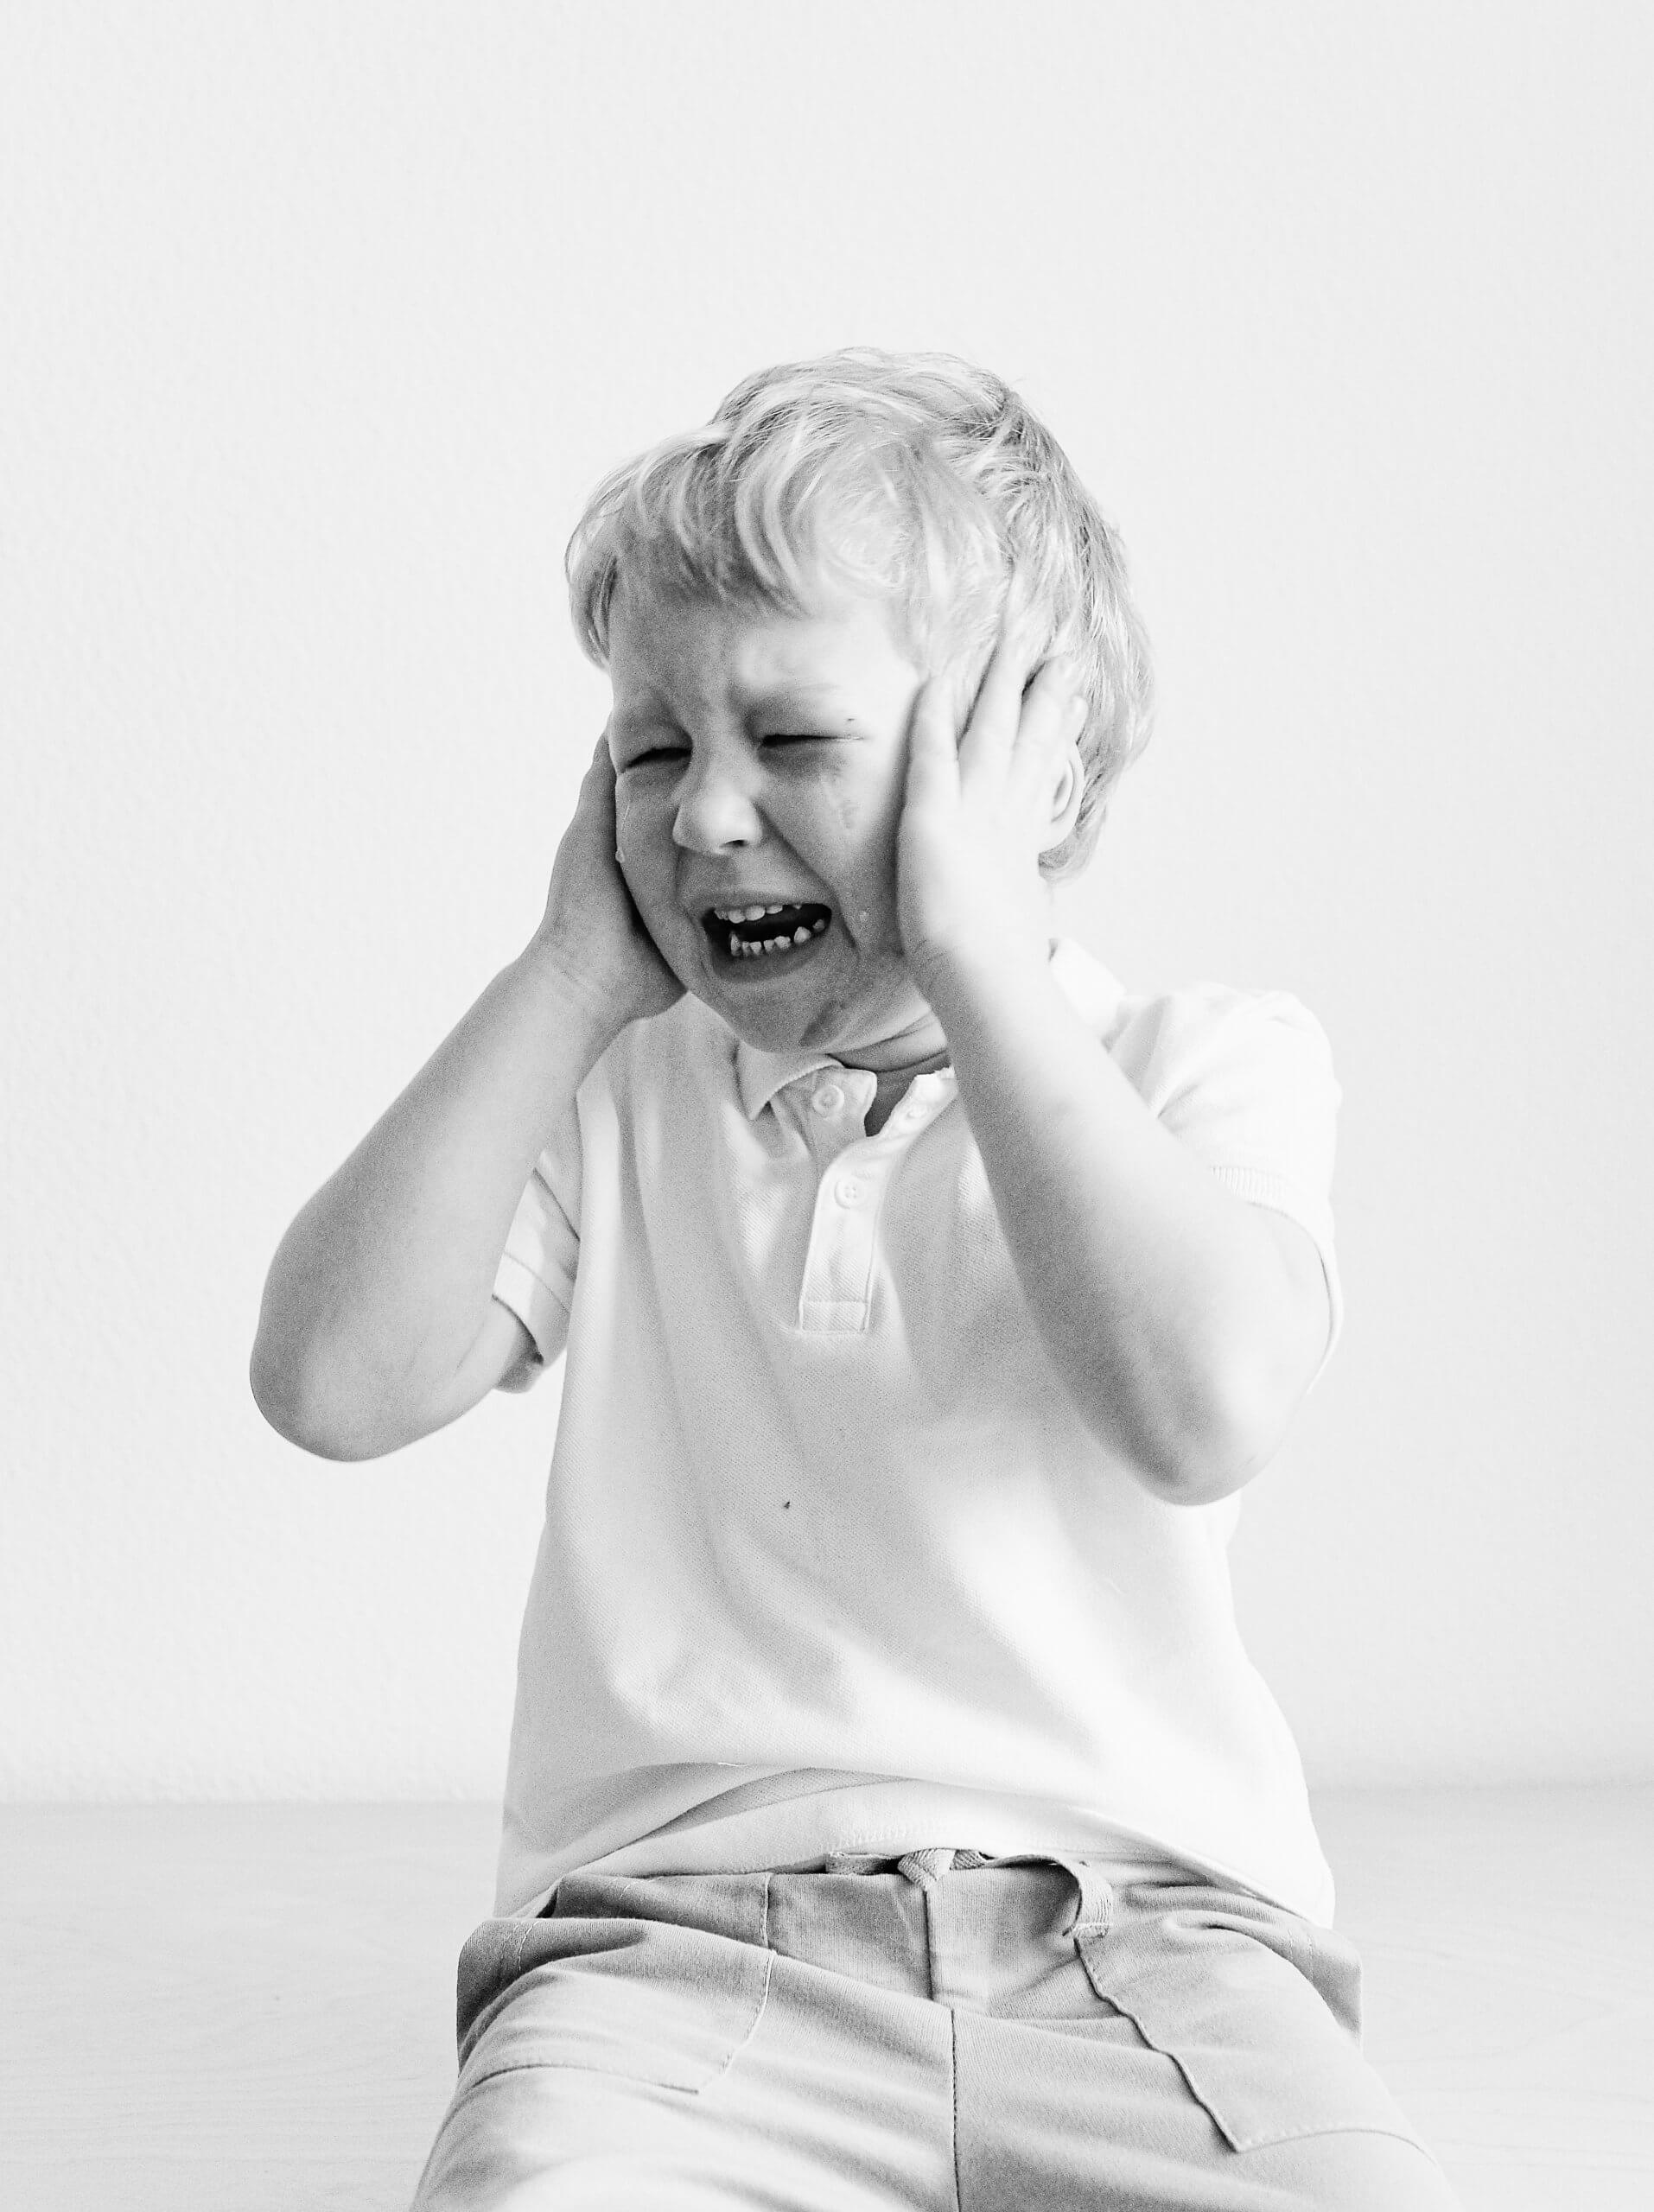 Disorganized Attachment - photo of young boy crying